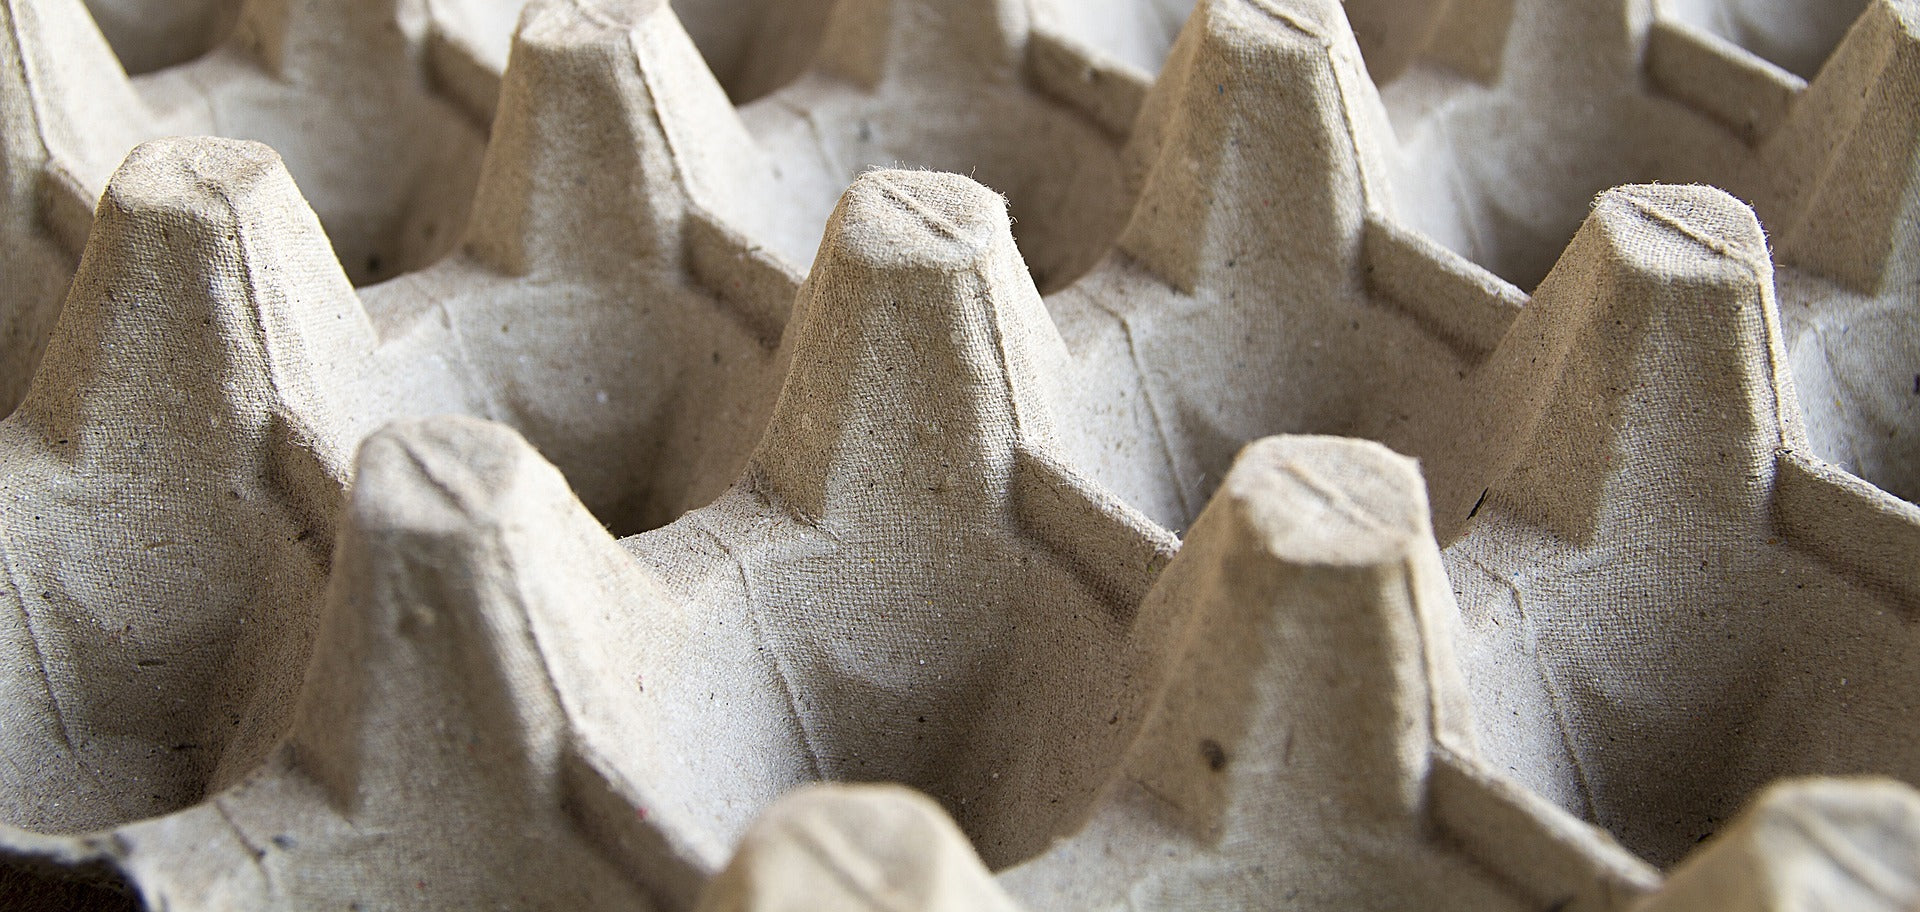 Close up image of empty cardboard egg carton container